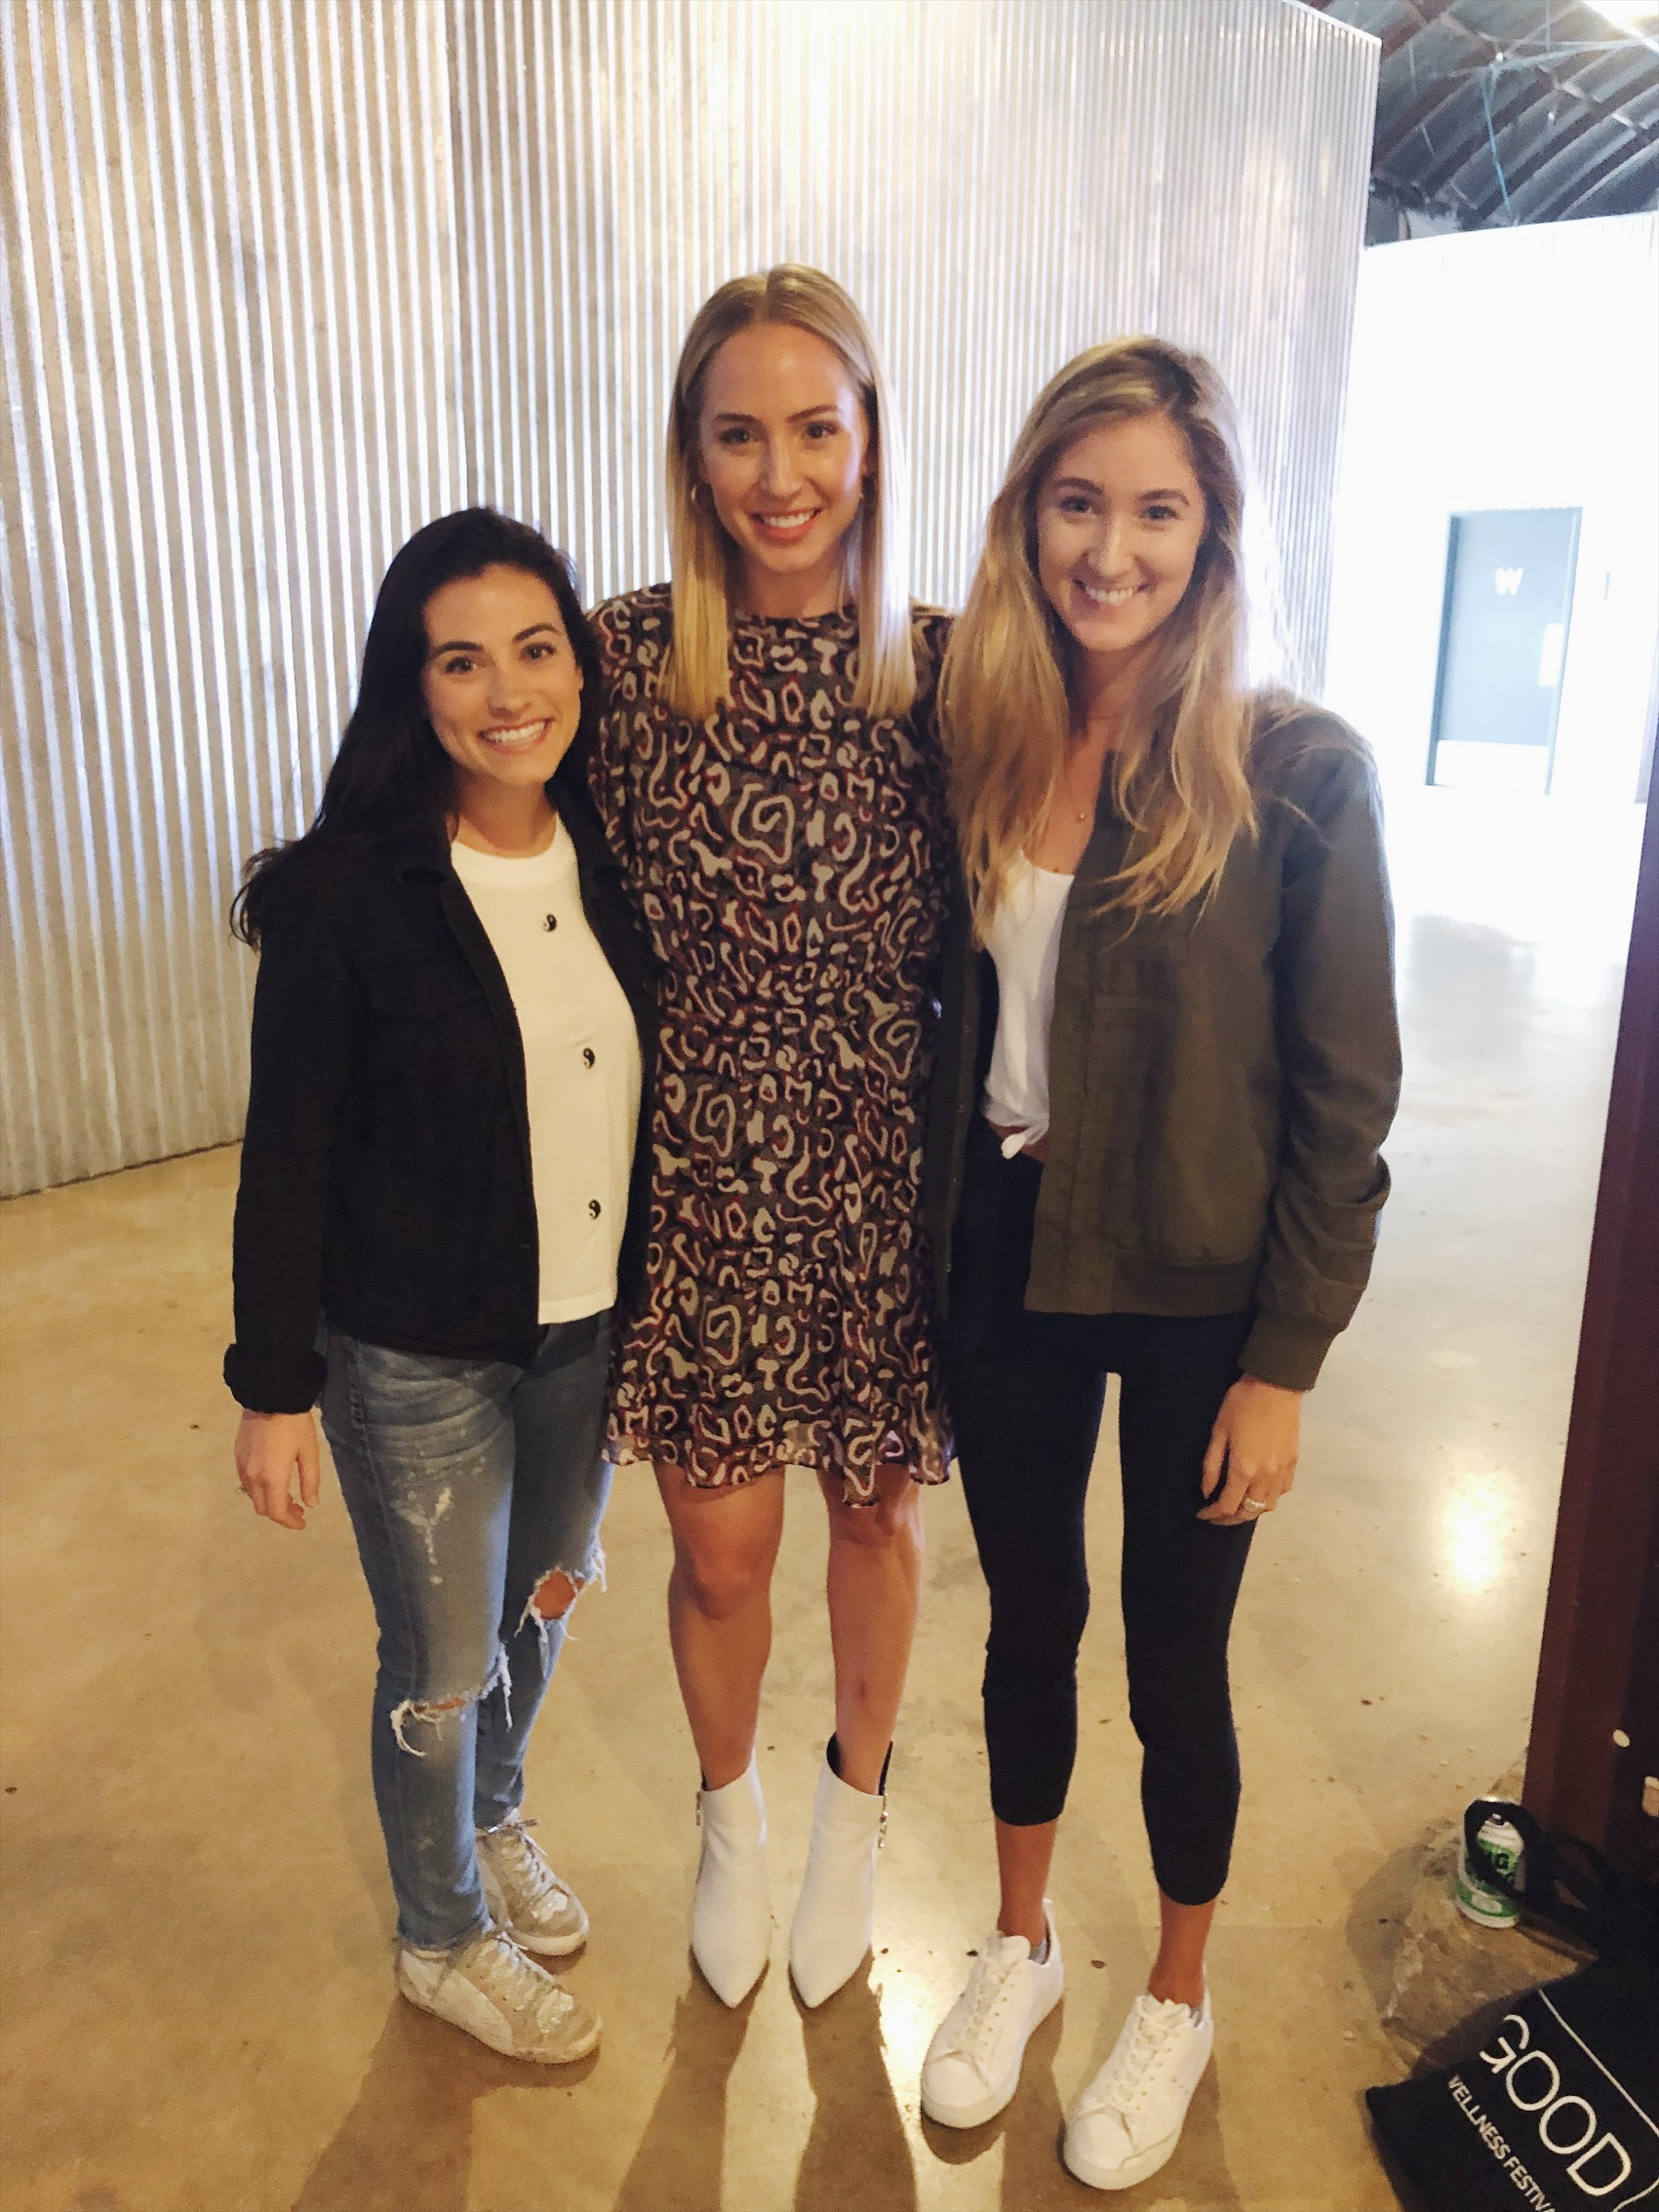 Ali and I loved meeting Lindsey Simcik from the Almost 30 Podcast!